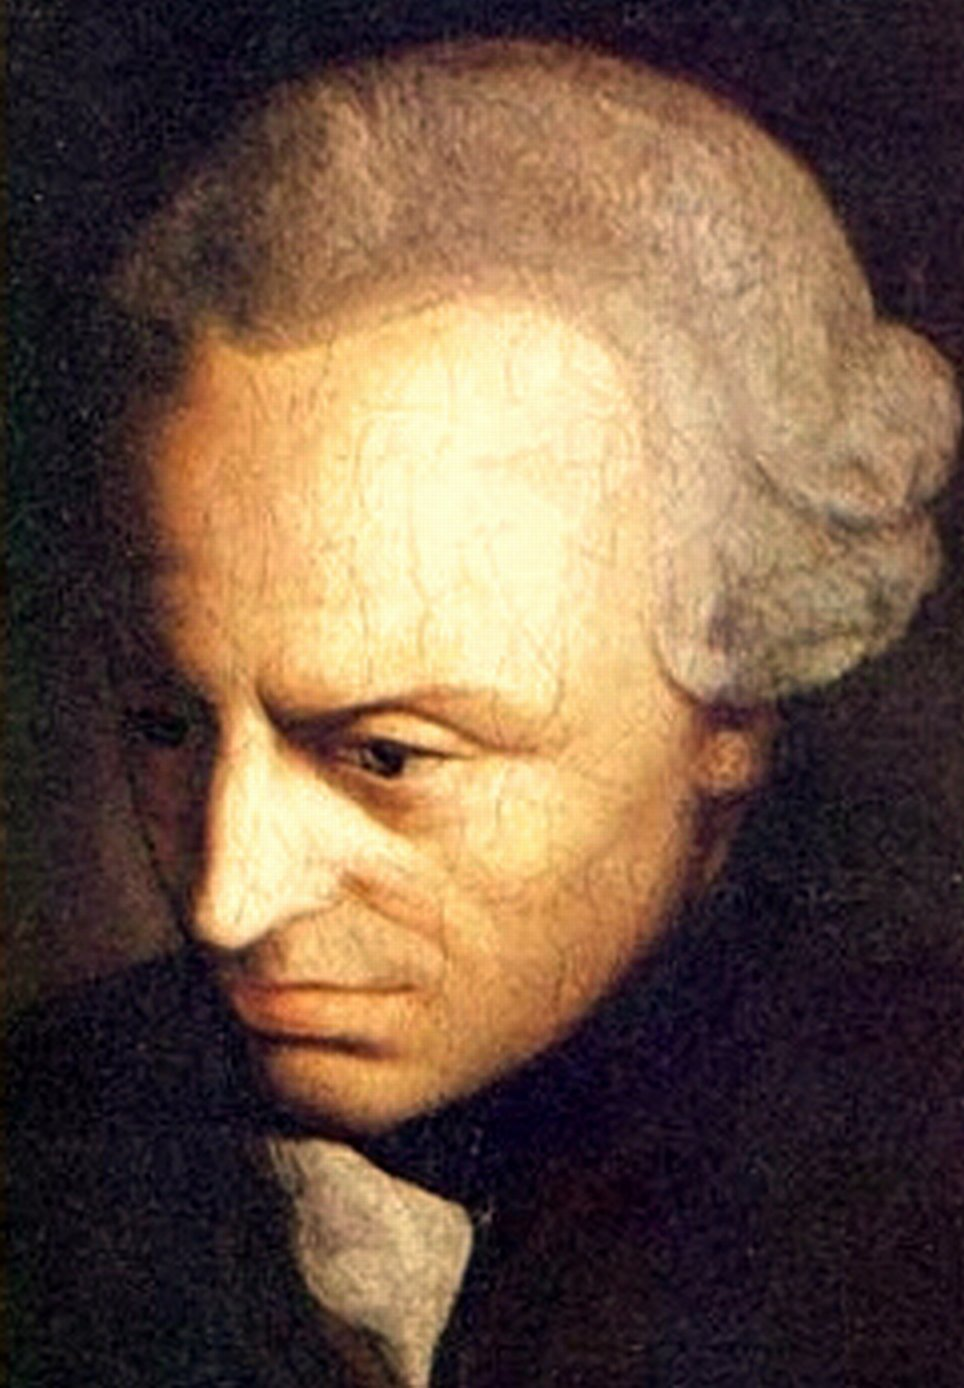 Immanuel Kant: The pandemic imperative